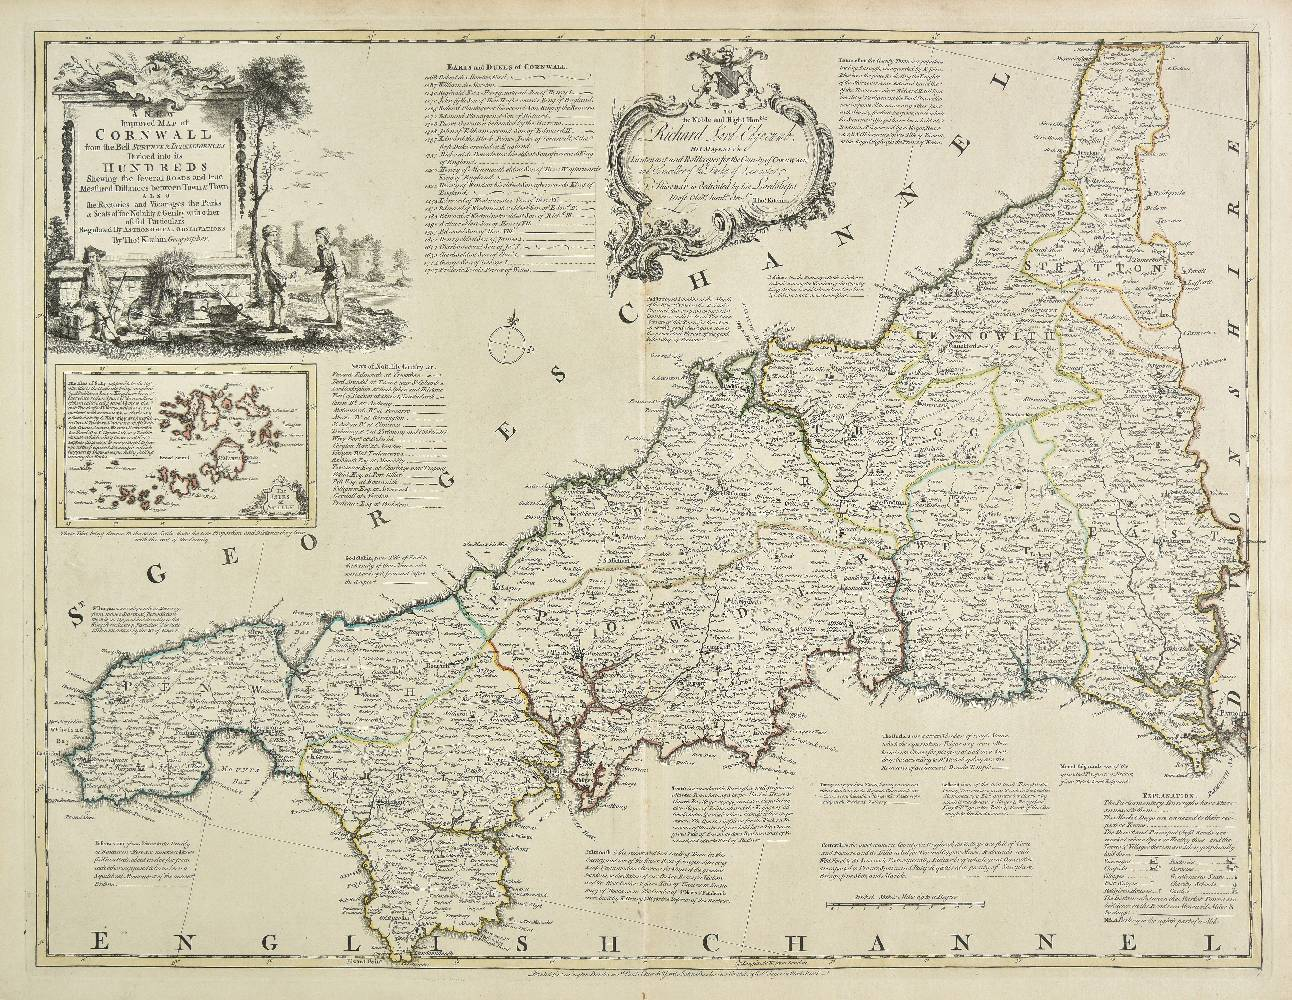 Lot 13 - Bowen (Emanuel & Kitchin, Thomas). The Large English Atlas: or, a New Set of Maps of all the